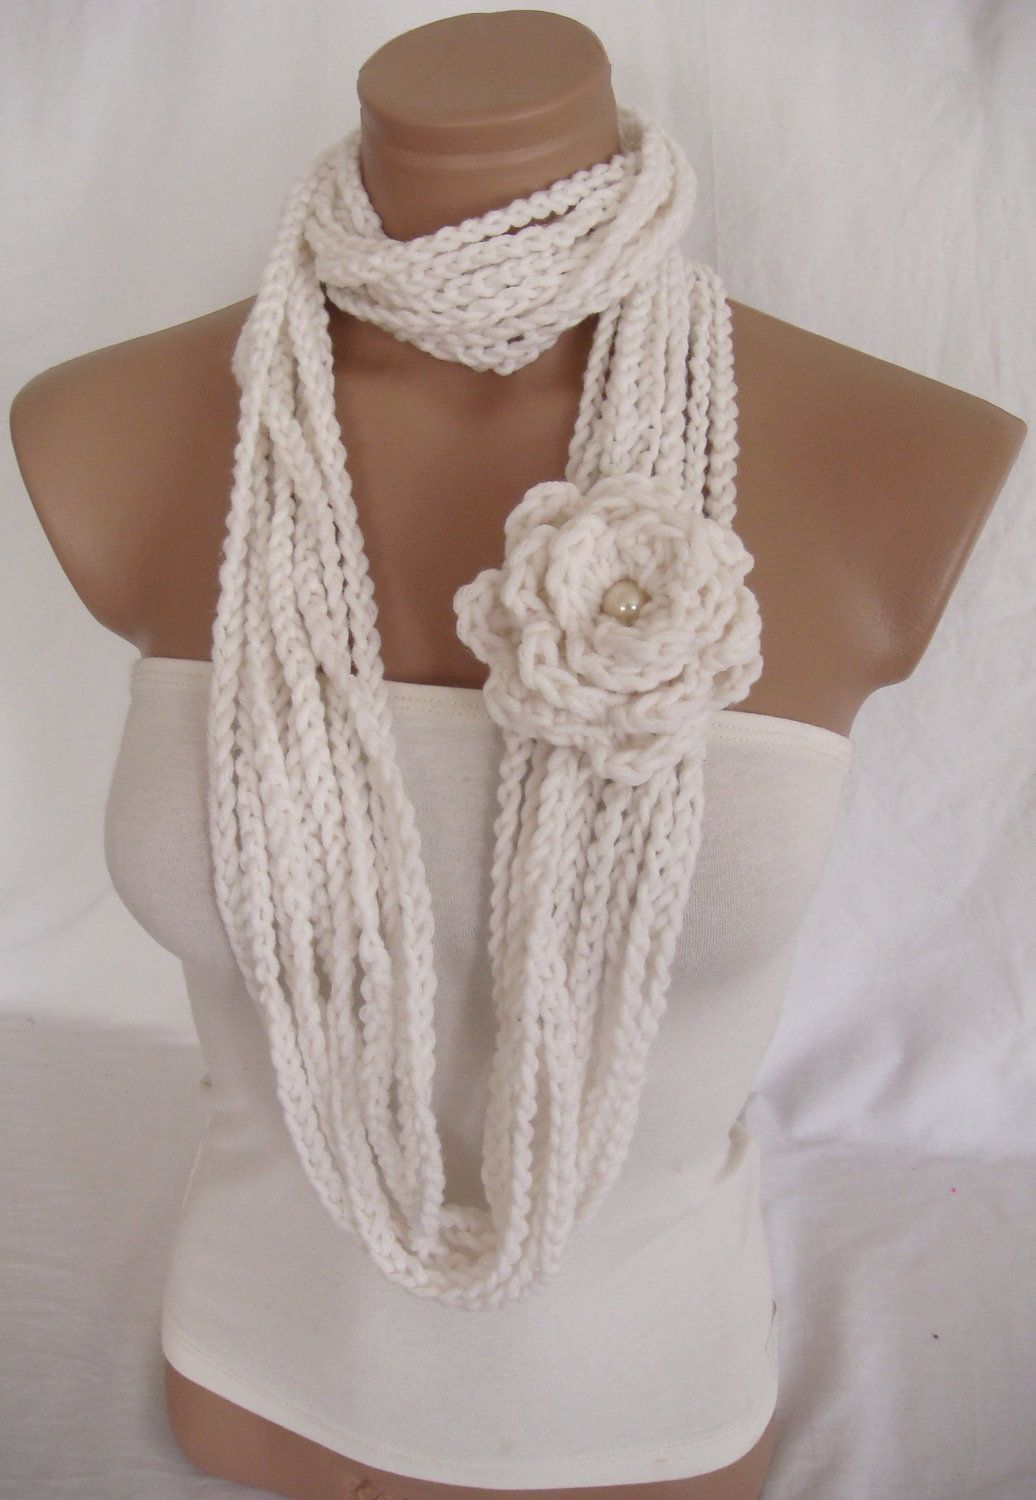 Crochet Infinity Scarf with Flower